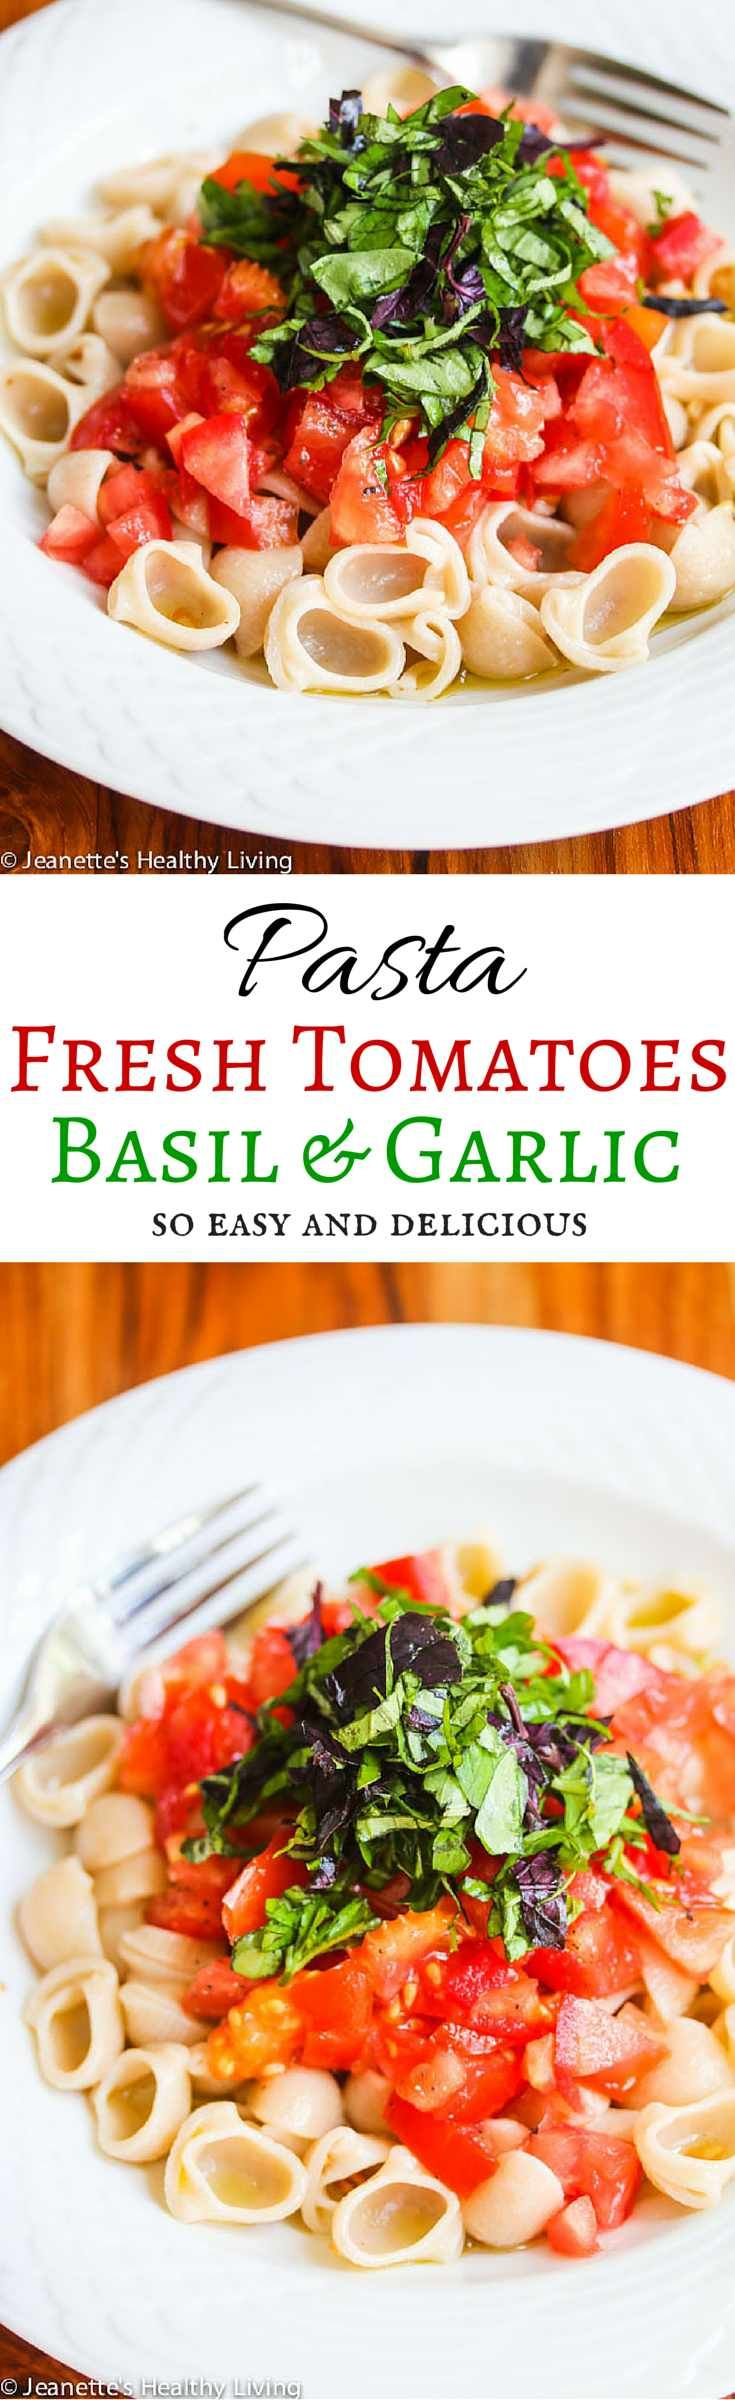 how to make easy pasta sauce with fresh tomatoes